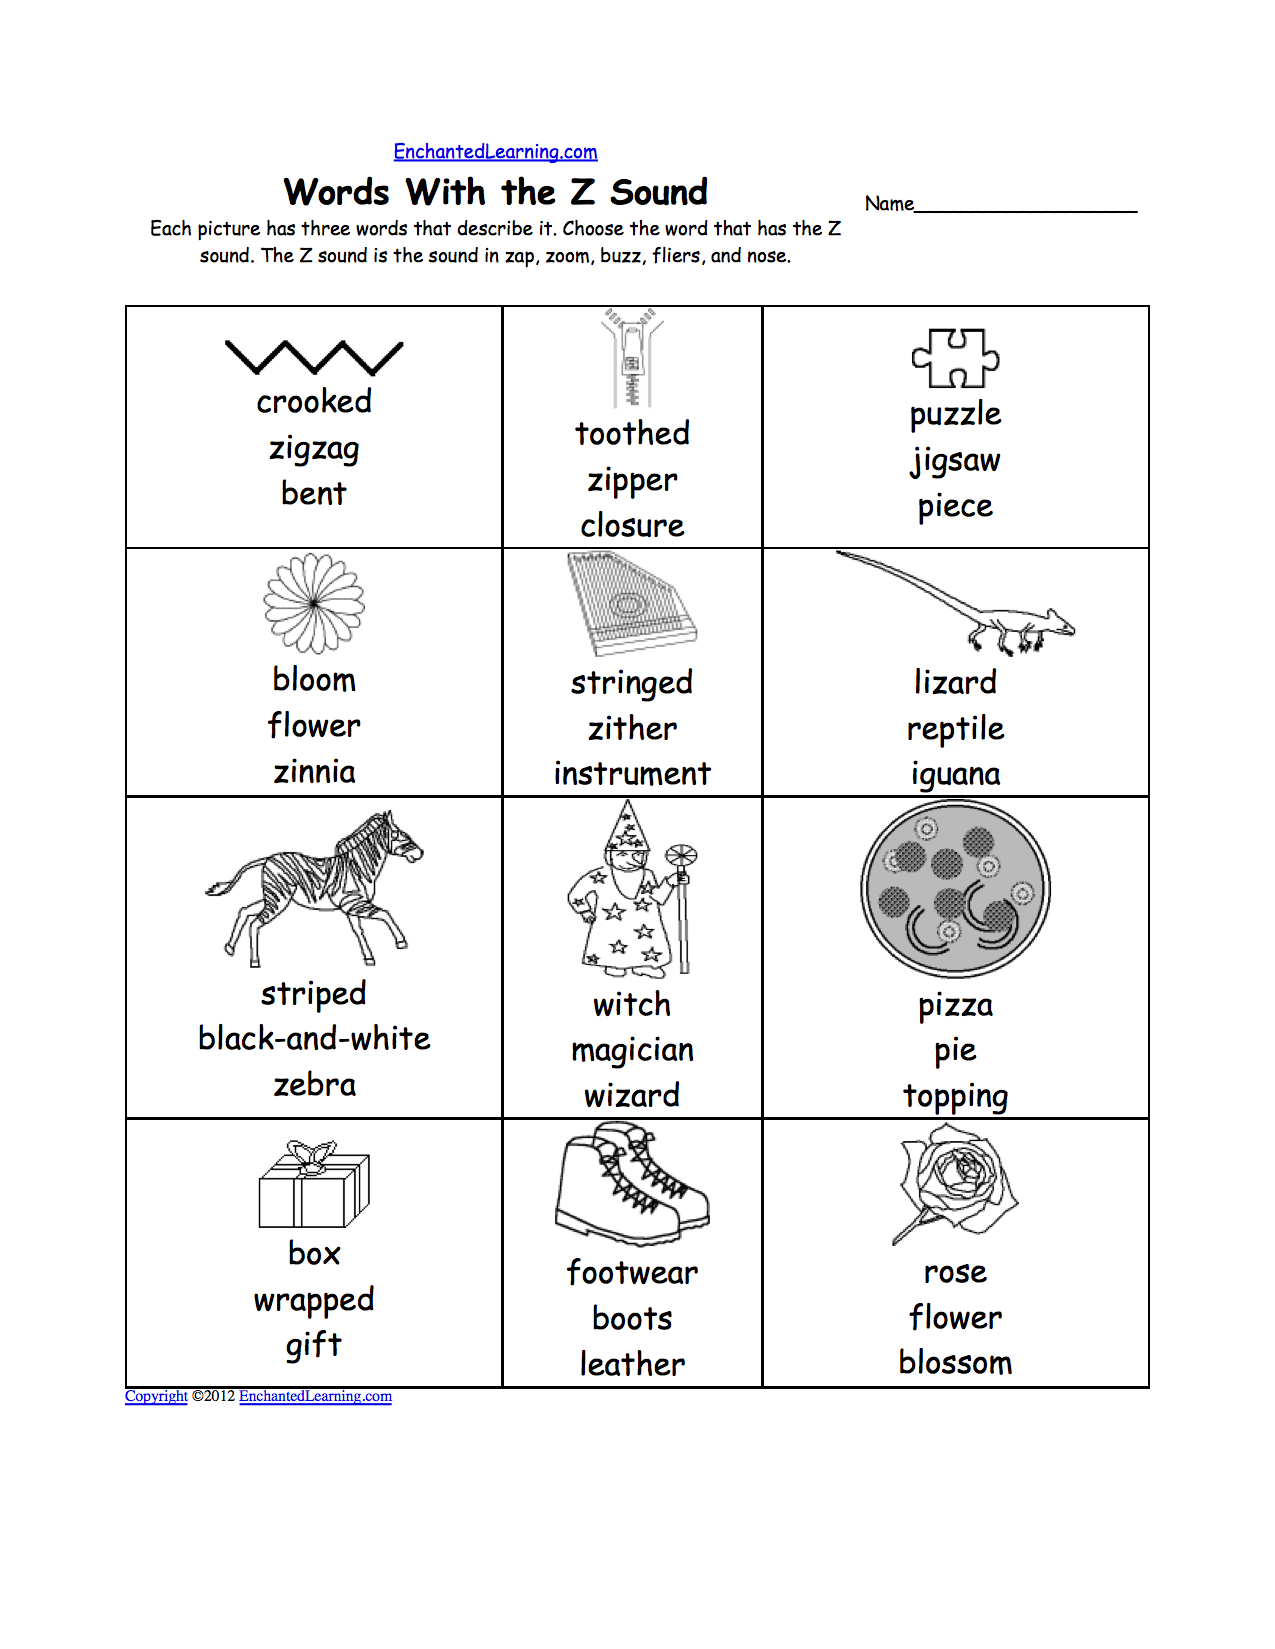 Weirdmailus  Winsome Phonics Worksheets Multiple Choice Worksheets To Print  With Interesting Phonics Worksheets Multiple Choice Worksheets To Print  Enchantedlearningcom With Attractive Short U Worksheets For First Grade Also Vowels Worksheet For Kindergarten In Addition Interrogative Pronouns Worksheets For Kids And Phonics Vowel Sounds Worksheets As Well As Verbs Worksheets Grade  Additionally Free Printable Worksheets For Nursery Class From Enchantedlearningcom With Weirdmailus  Interesting Phonics Worksheets Multiple Choice Worksheets To Print  With Attractive Phonics Worksheets Multiple Choice Worksheets To Print  Enchantedlearningcom And Winsome Short U Worksheets For First Grade Also Vowels Worksheet For Kindergarten In Addition Interrogative Pronouns Worksheets For Kids From Enchantedlearningcom